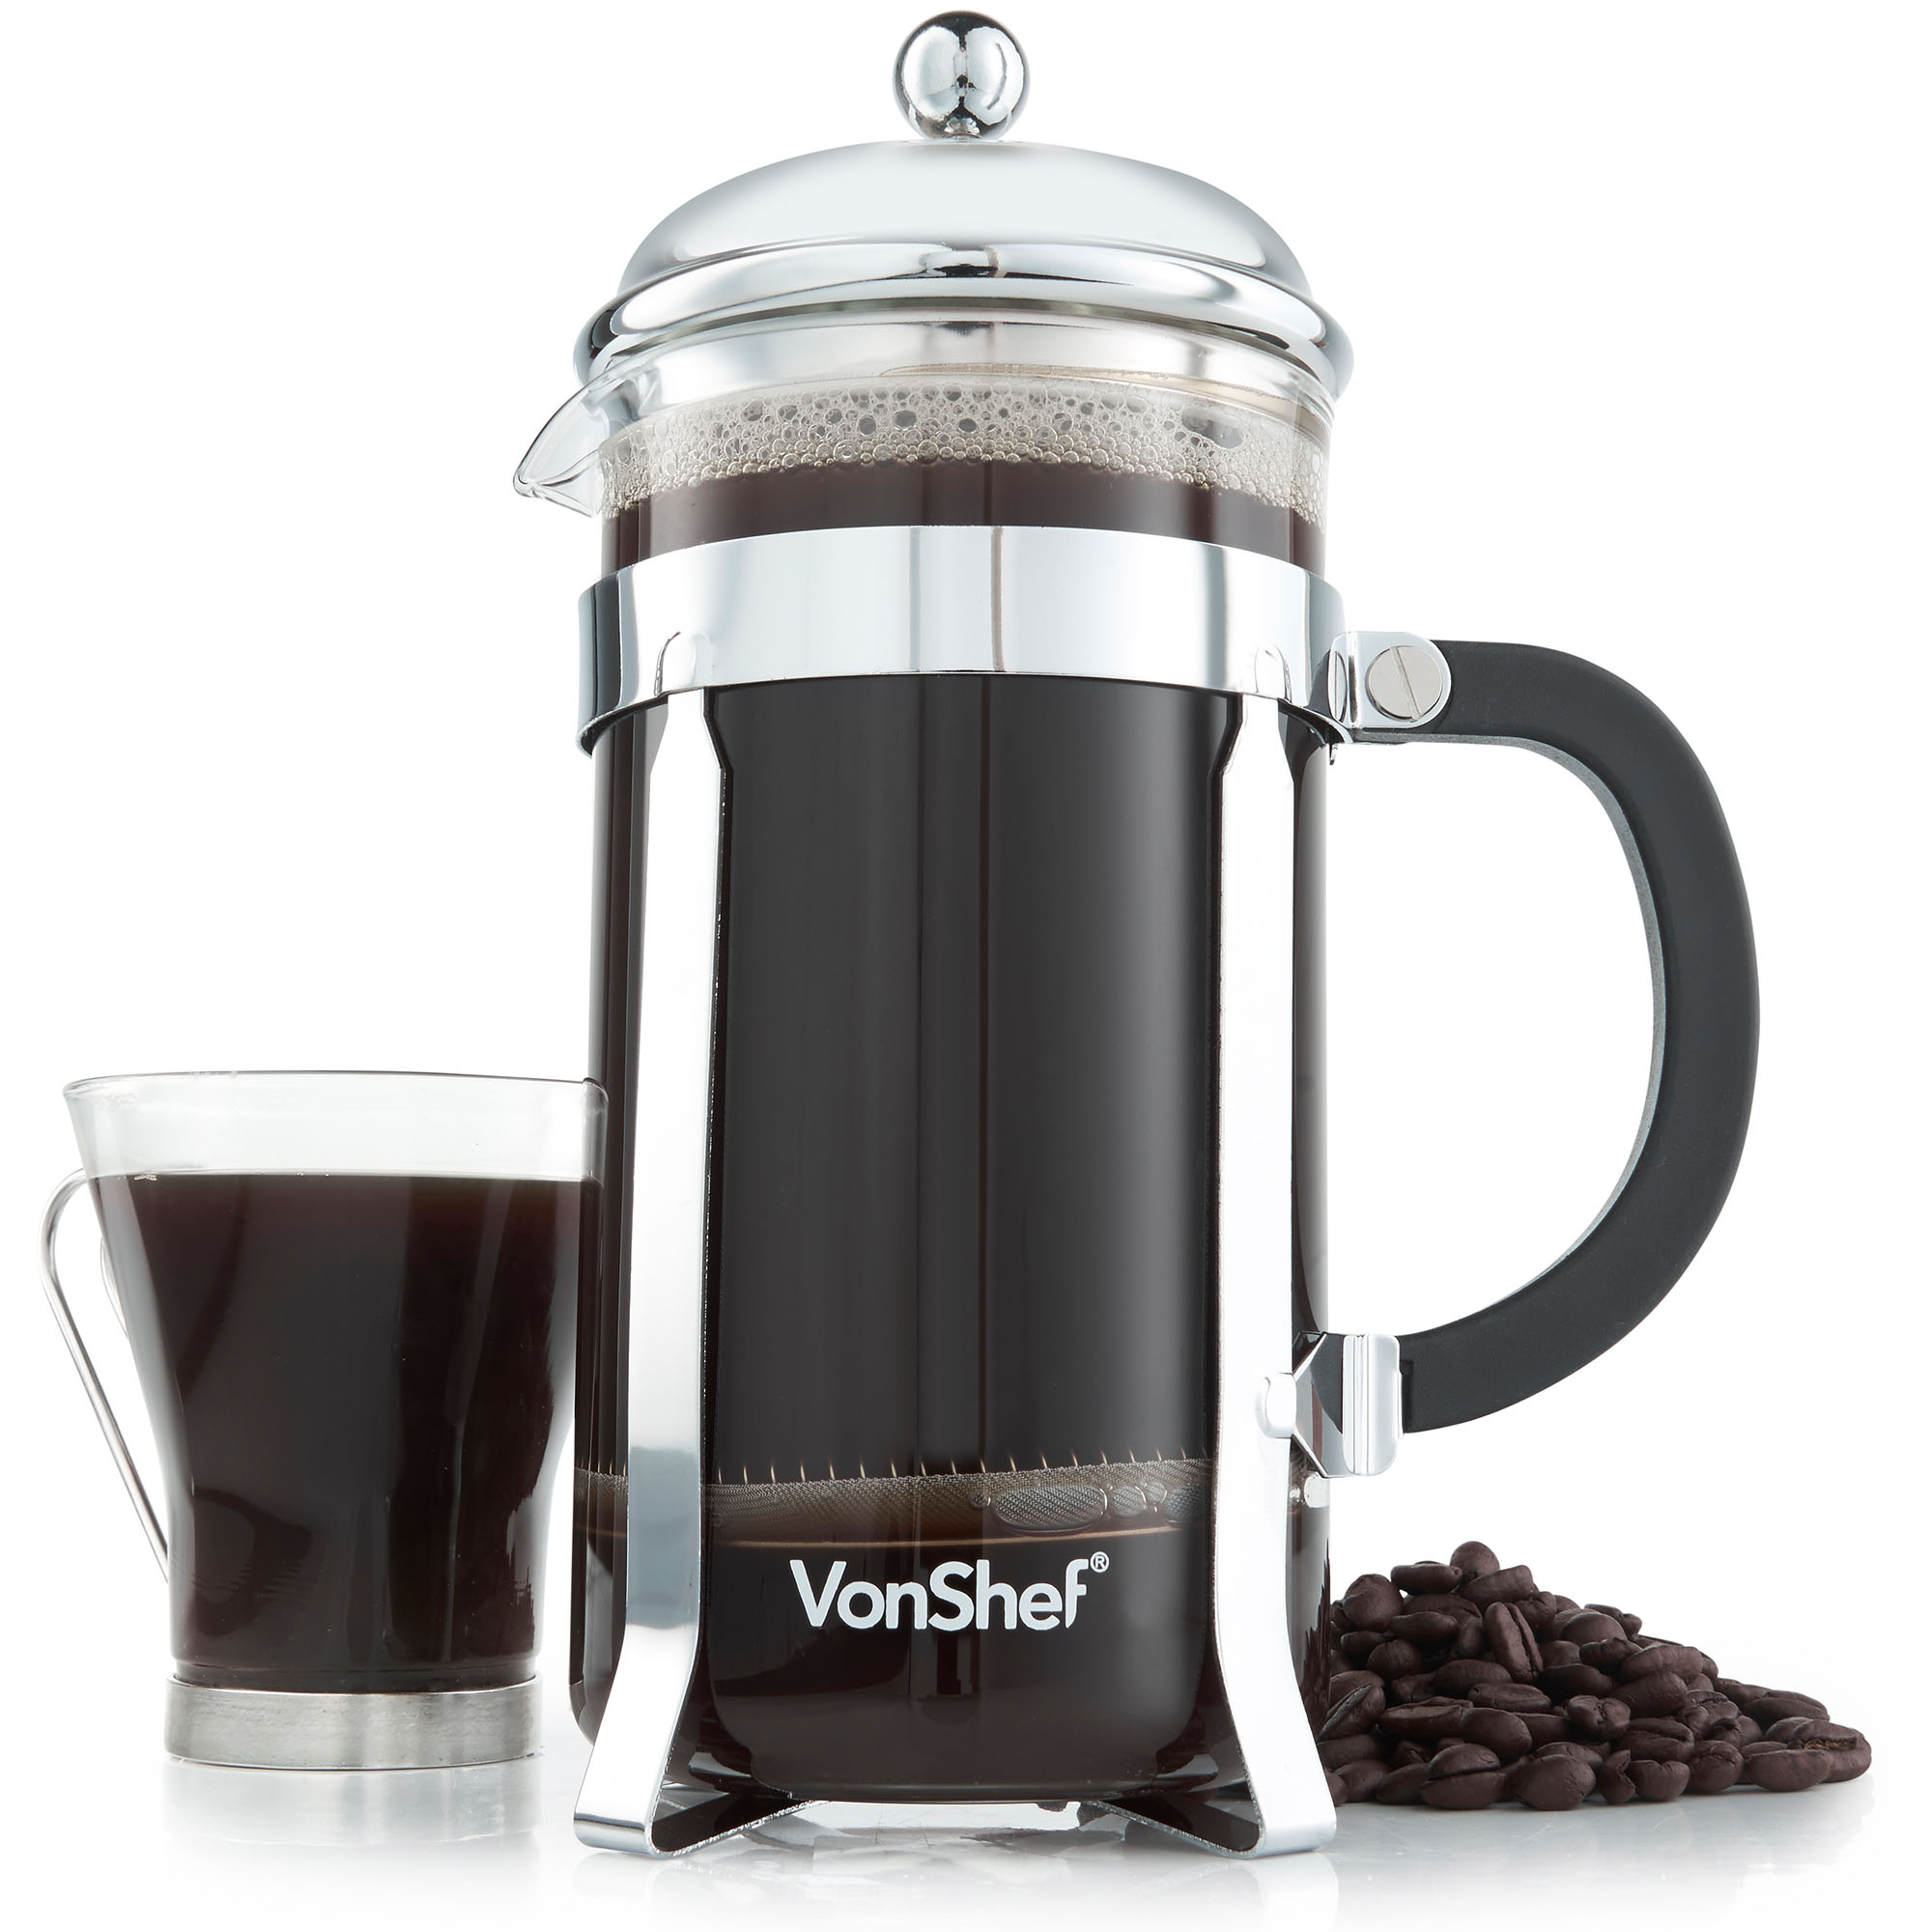 VonShef 12 Cup/1.5 L French Press Stainless Steel Cafetiere Filter Coffee Maker eBay